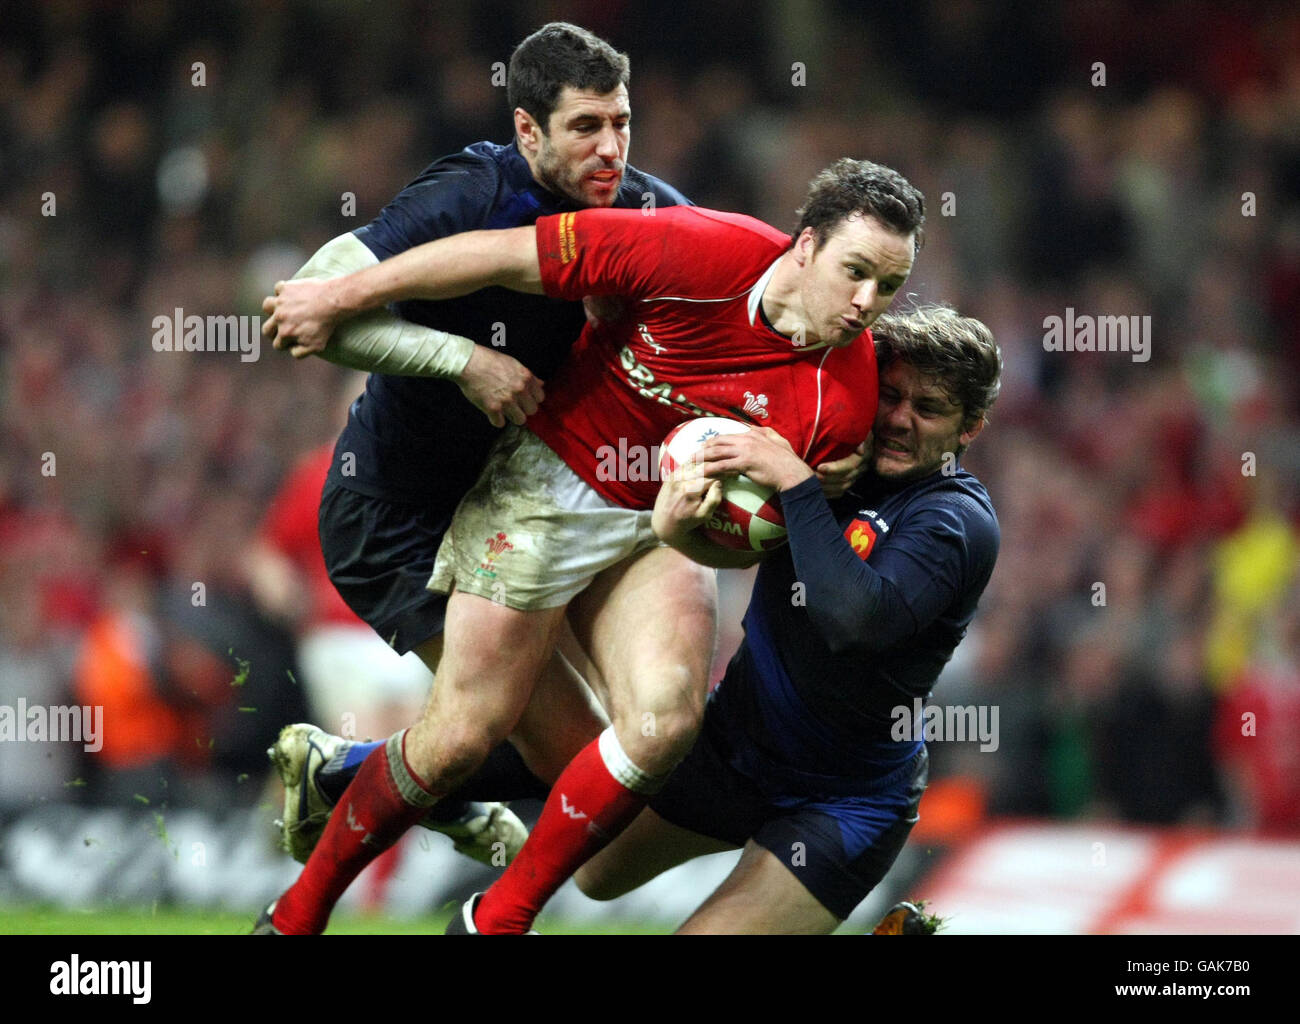 Rugby Union - RBS 6 Nations Championship 2008 - Wales v France - Millennium Stadium - Stock Image